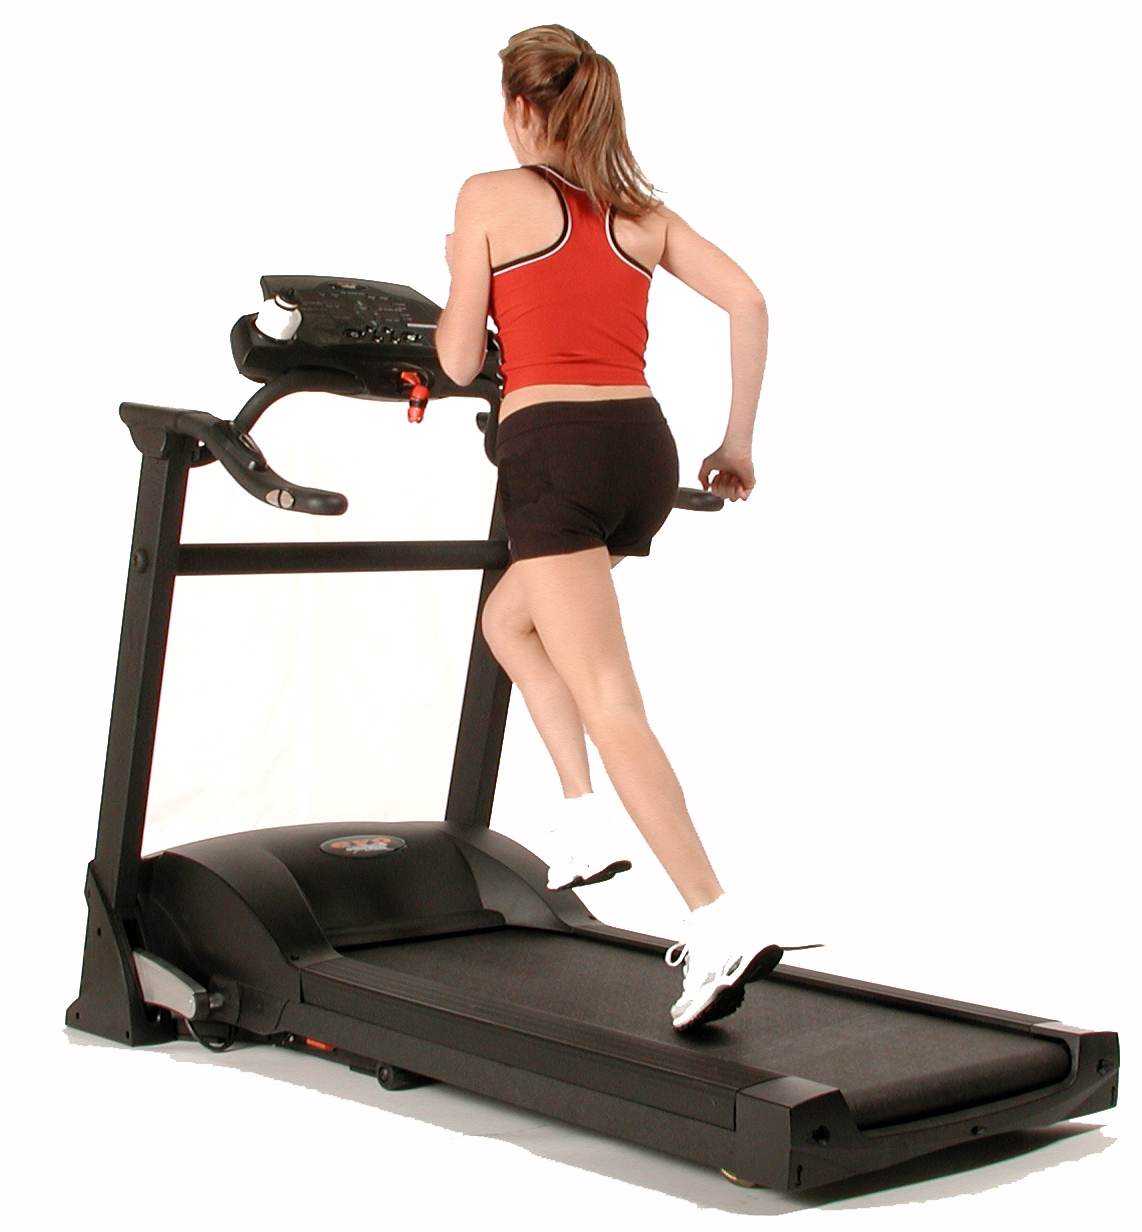 Top Exercise Equipment: Top 5 Gym Equipment For Women